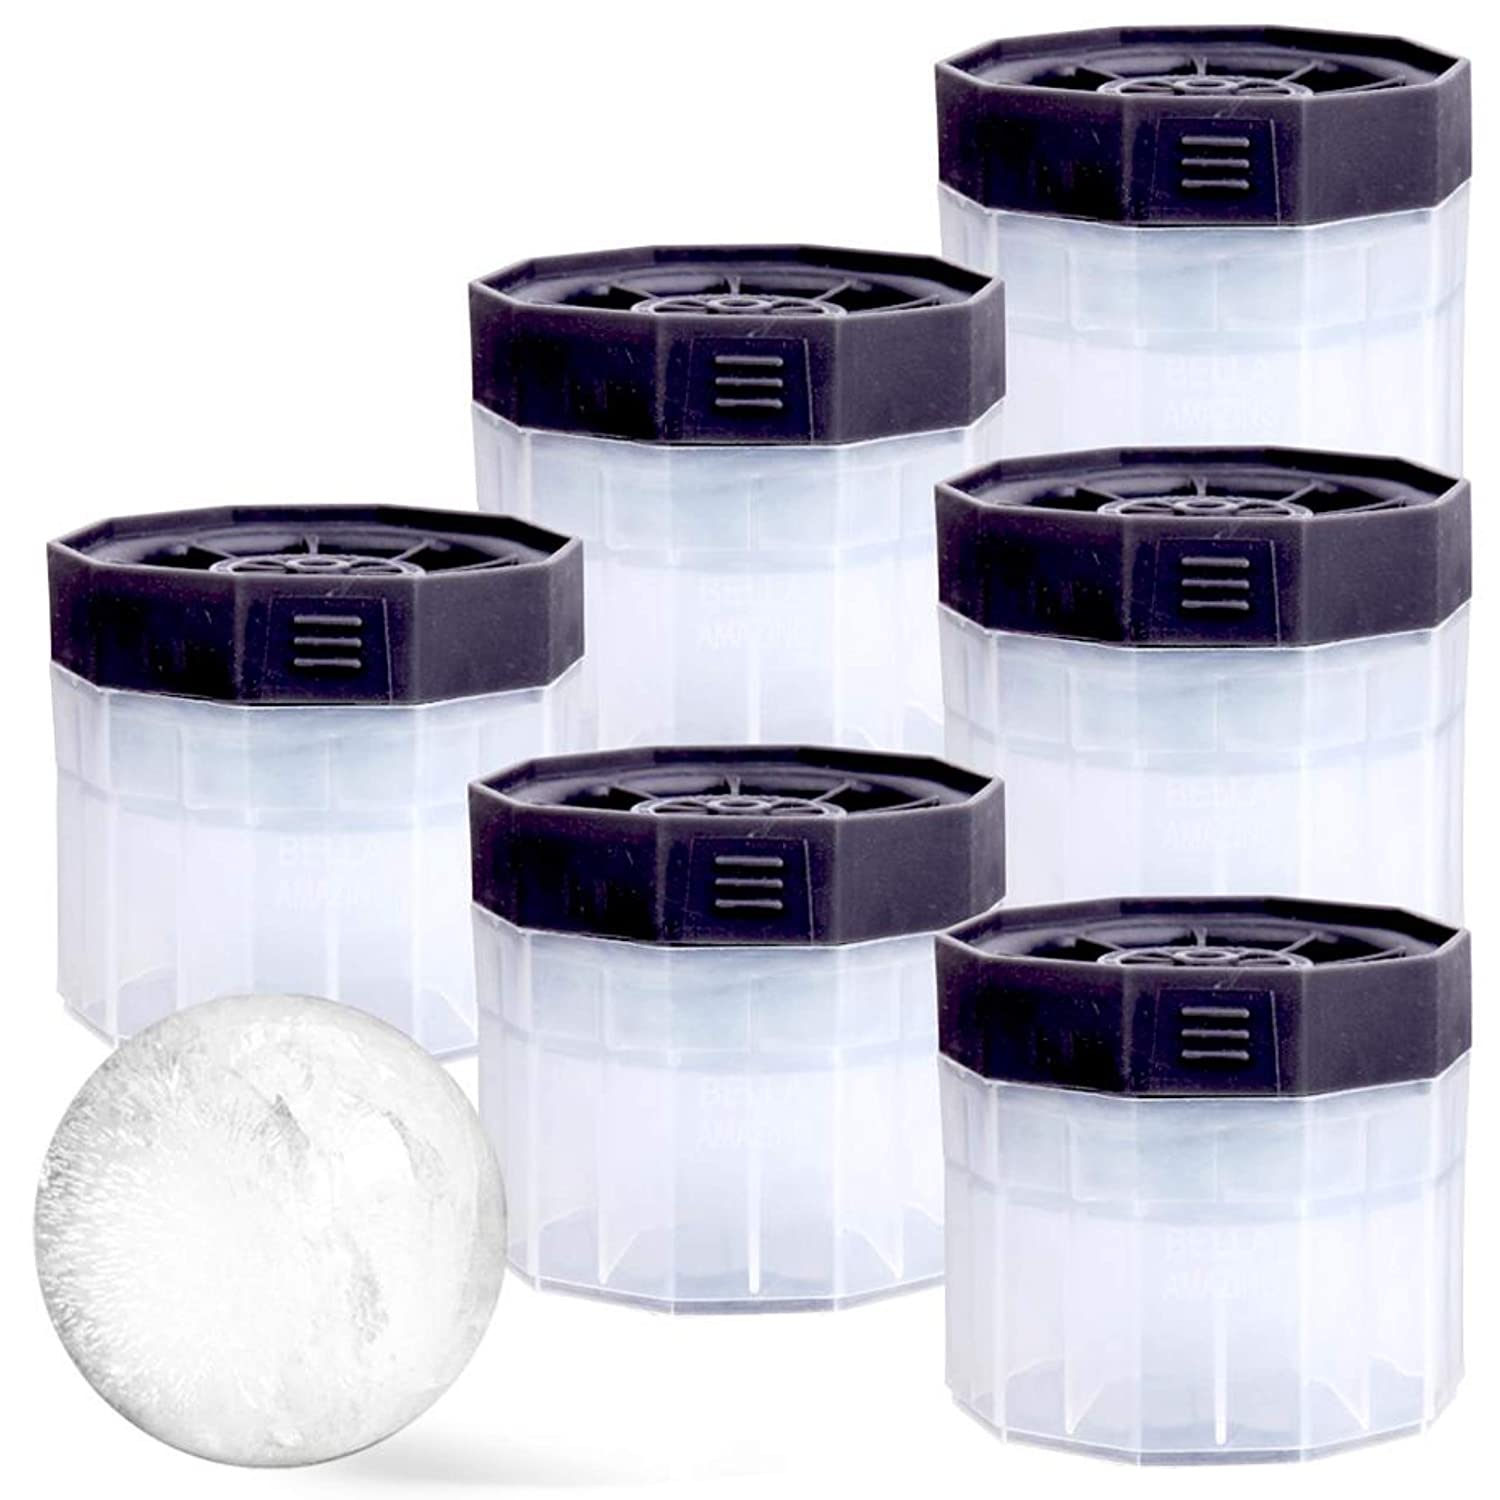 PREMIUM Ice Ball Molds (6-Pack), BPA Free 2.5 Inch Ice Spheres. Slow Melting Round Ice Cube Maker for Whiskey and Bourbon